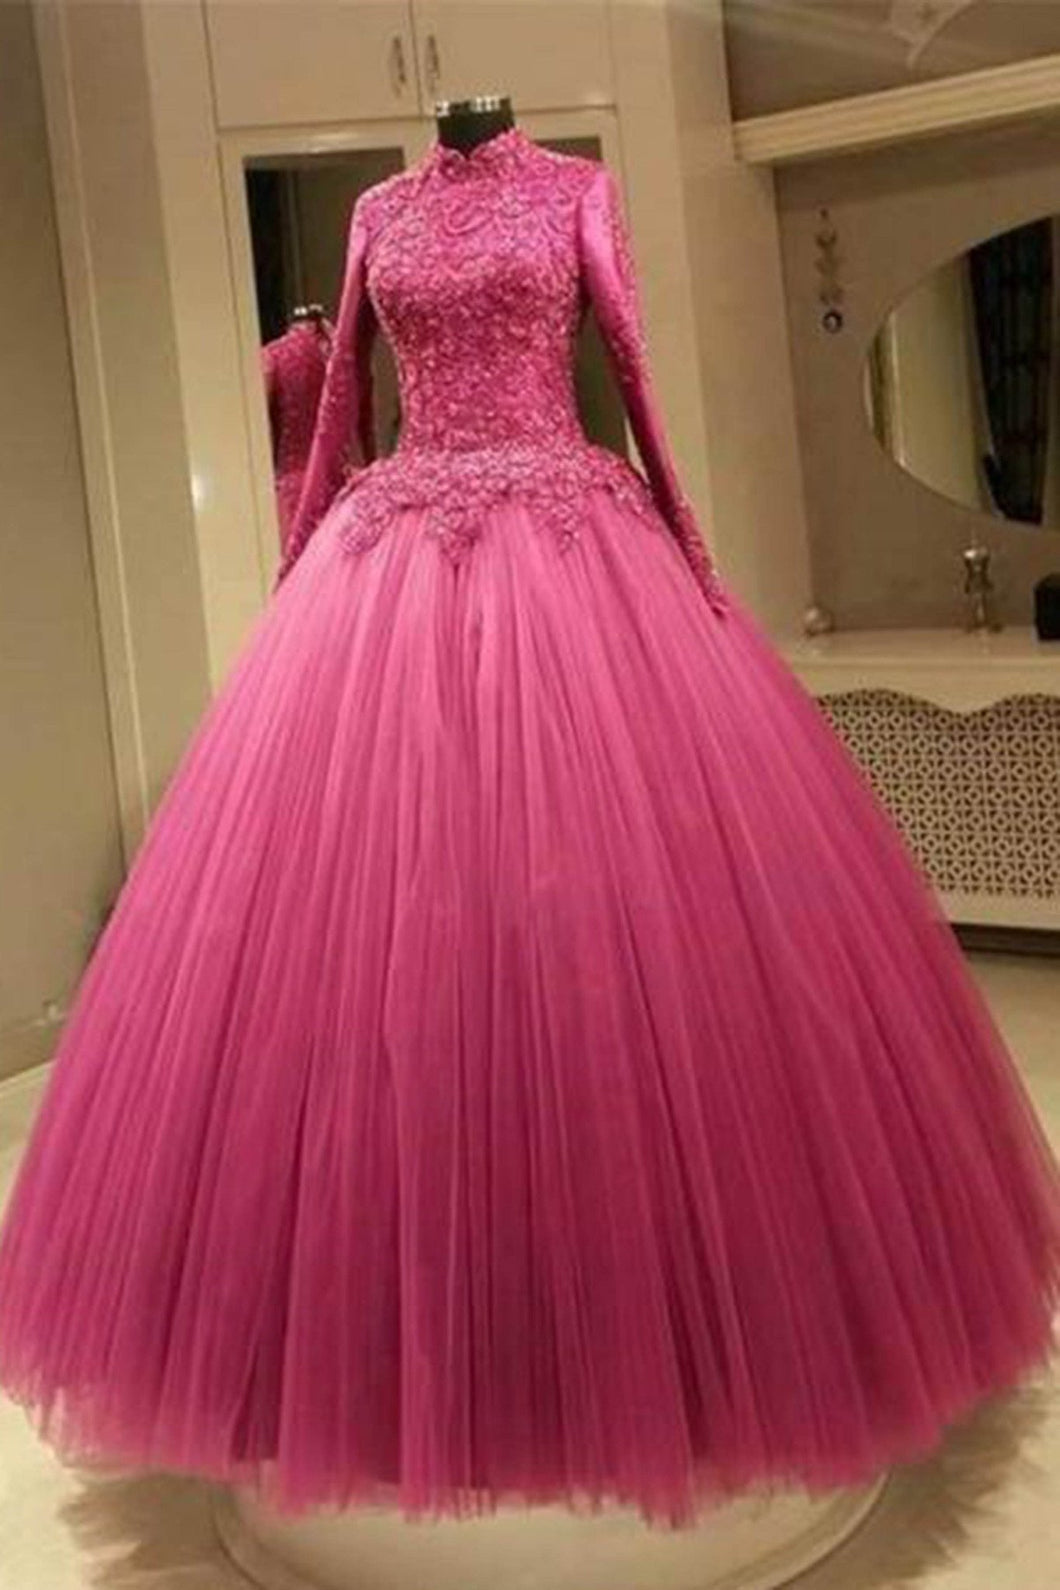 Sweet 16 Dresses | Organza lace long sleeves ball gown dresses,long homecoming dresses